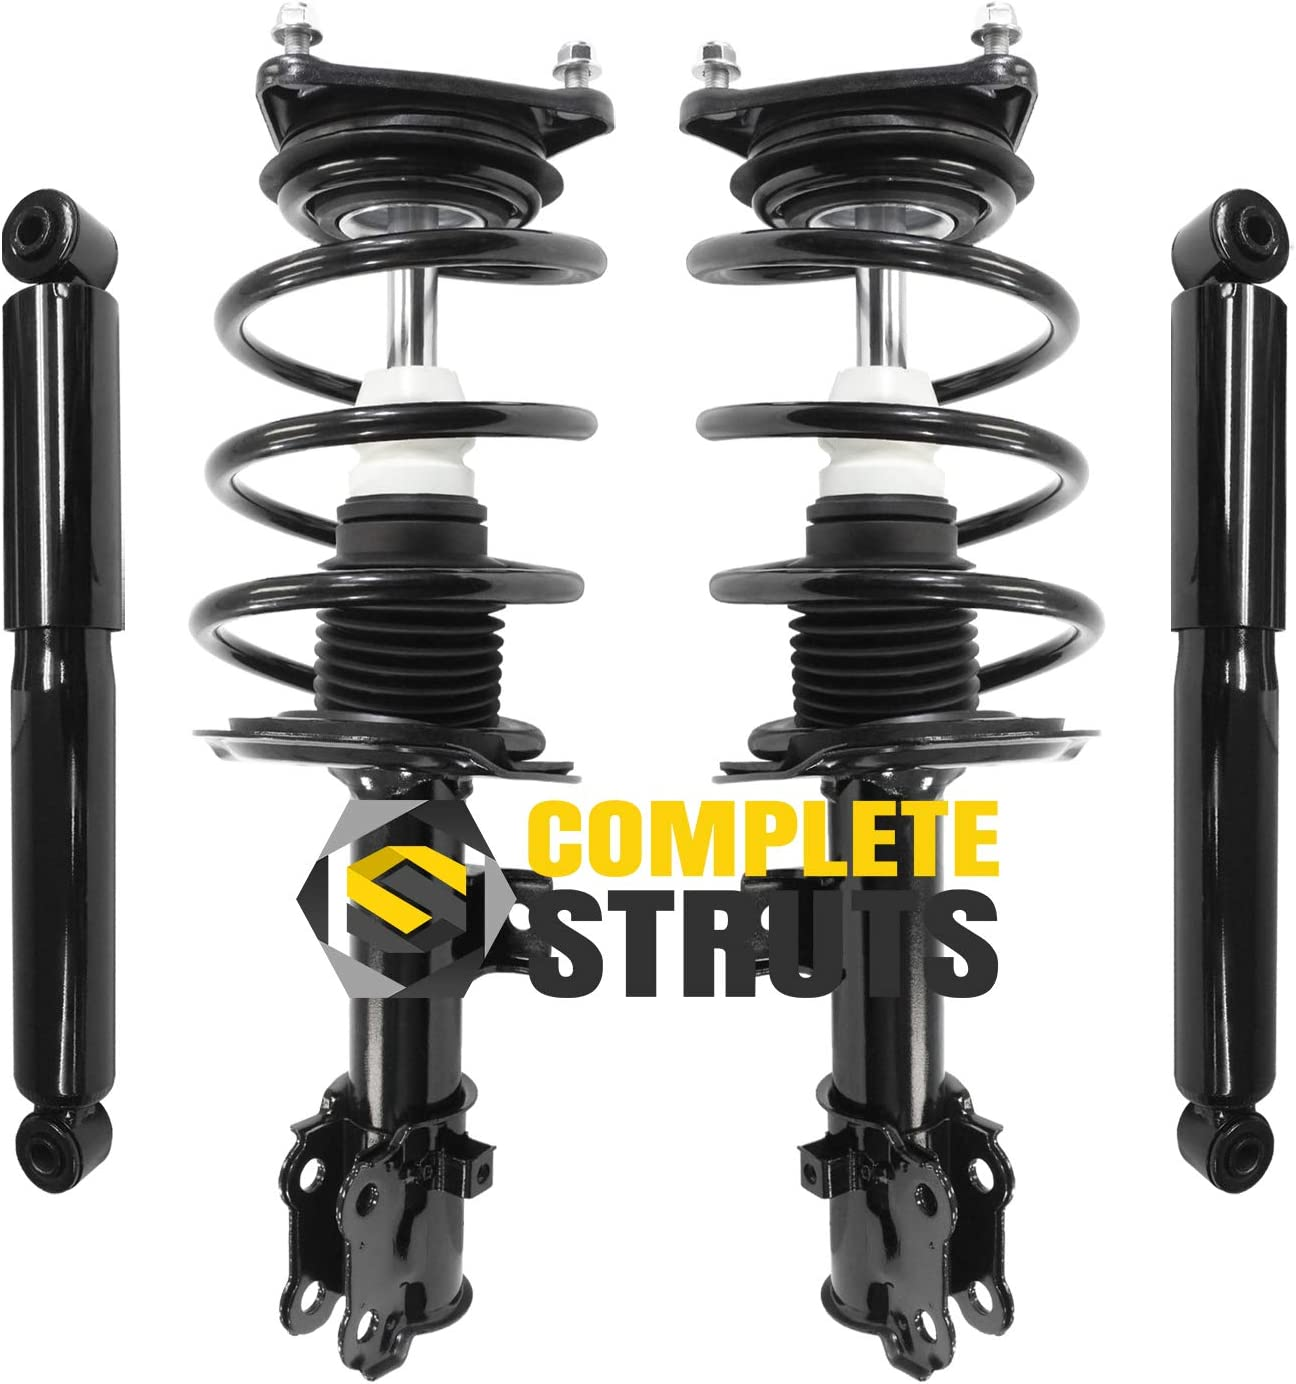 COMPLETESTRUTS - Front Max 79% OFF Complete Ranking TOP5 Strut Assemblies with Coil Sprin